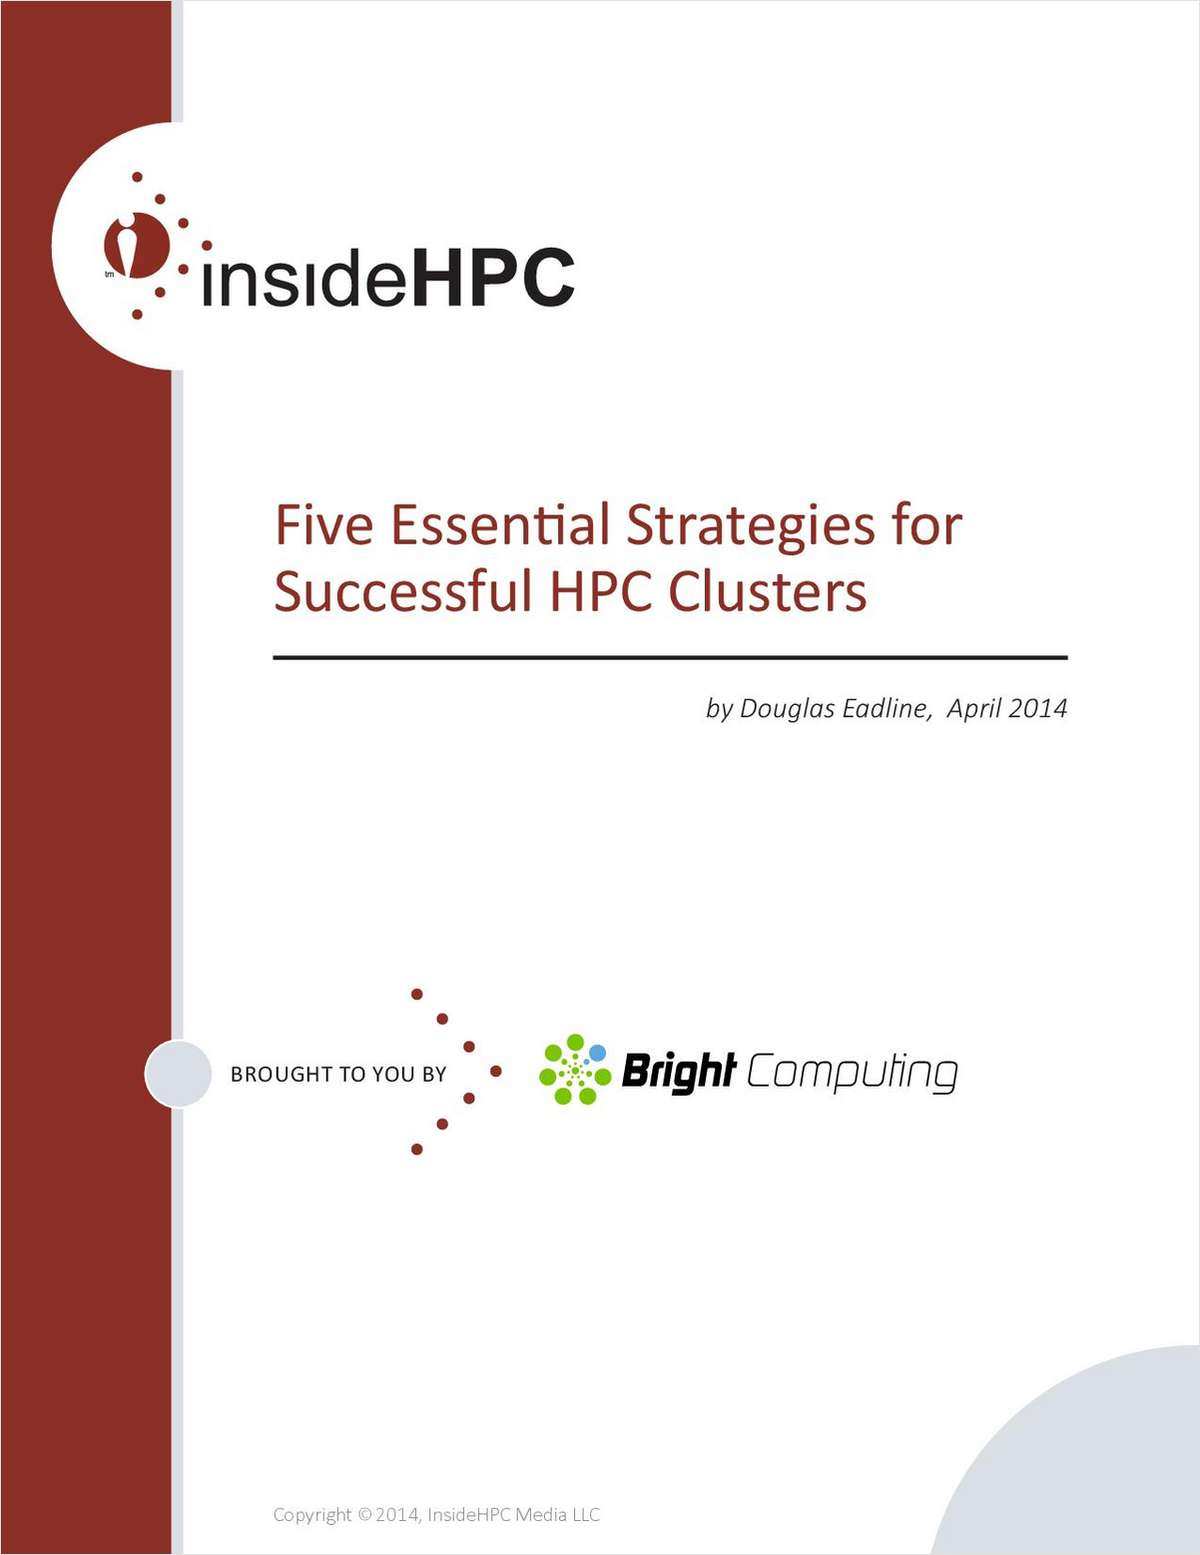 Five Essential Strategies for Successful HPC Clusters